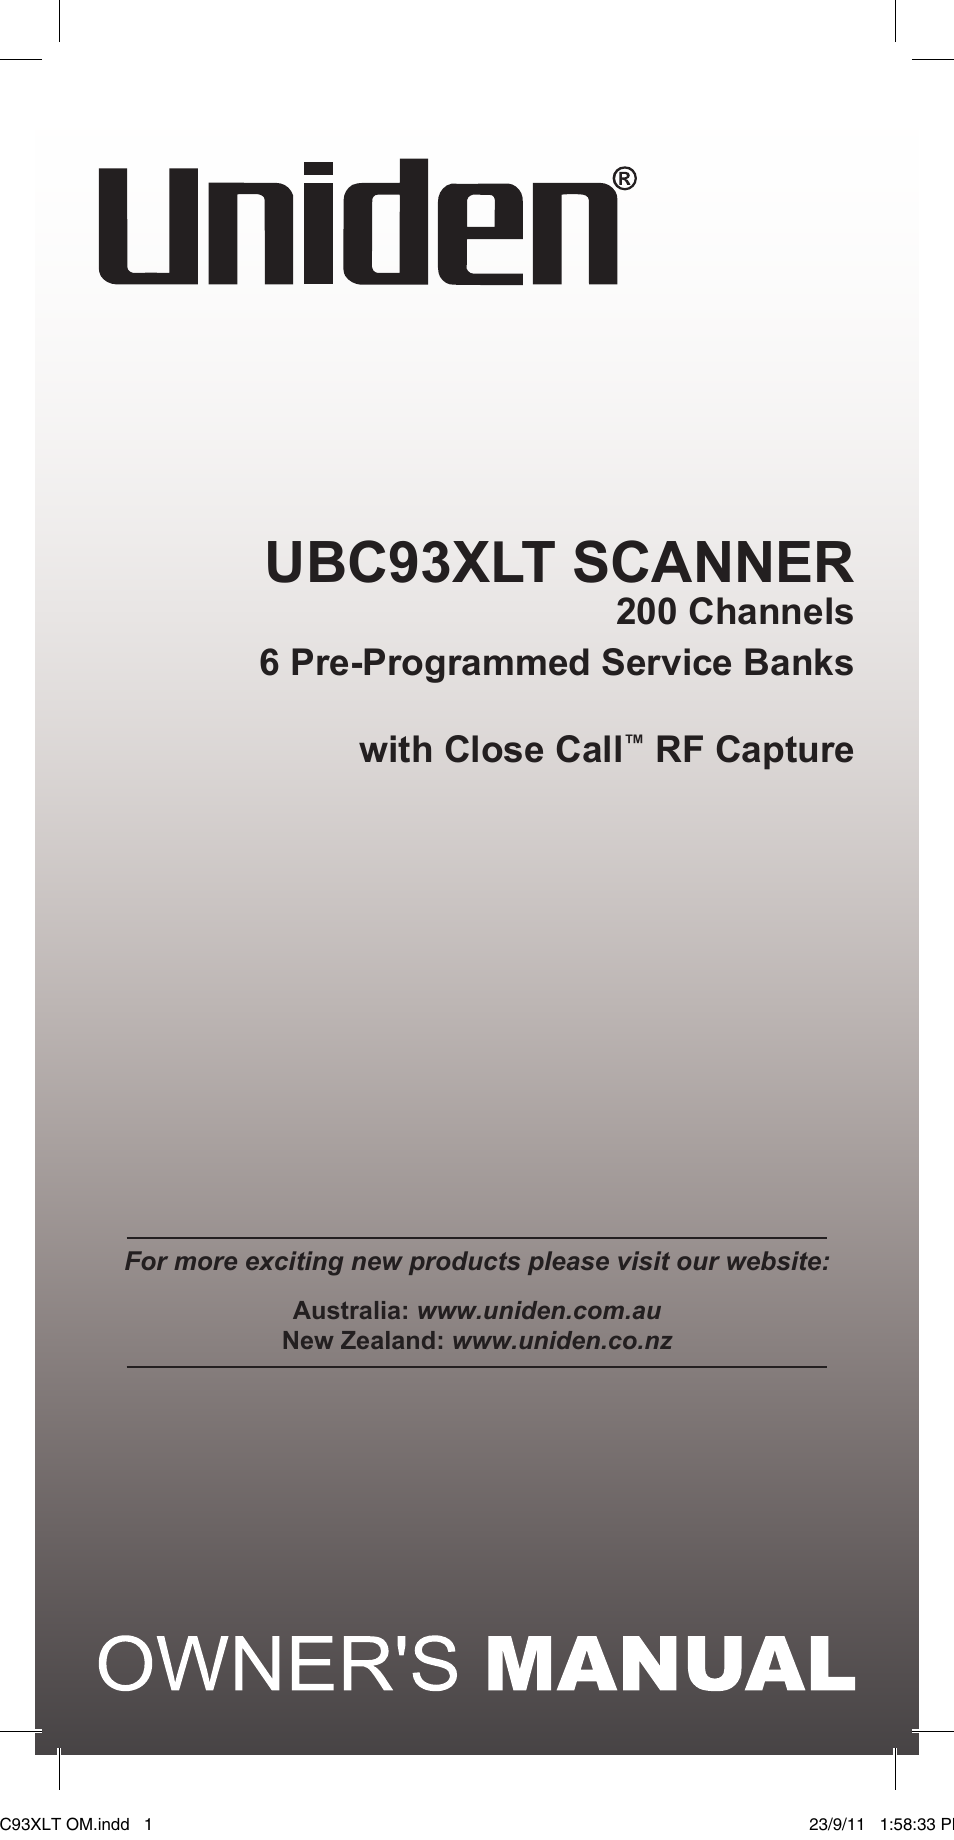 uniden ubc93xlt user manual 60 pages rh manualsdir com